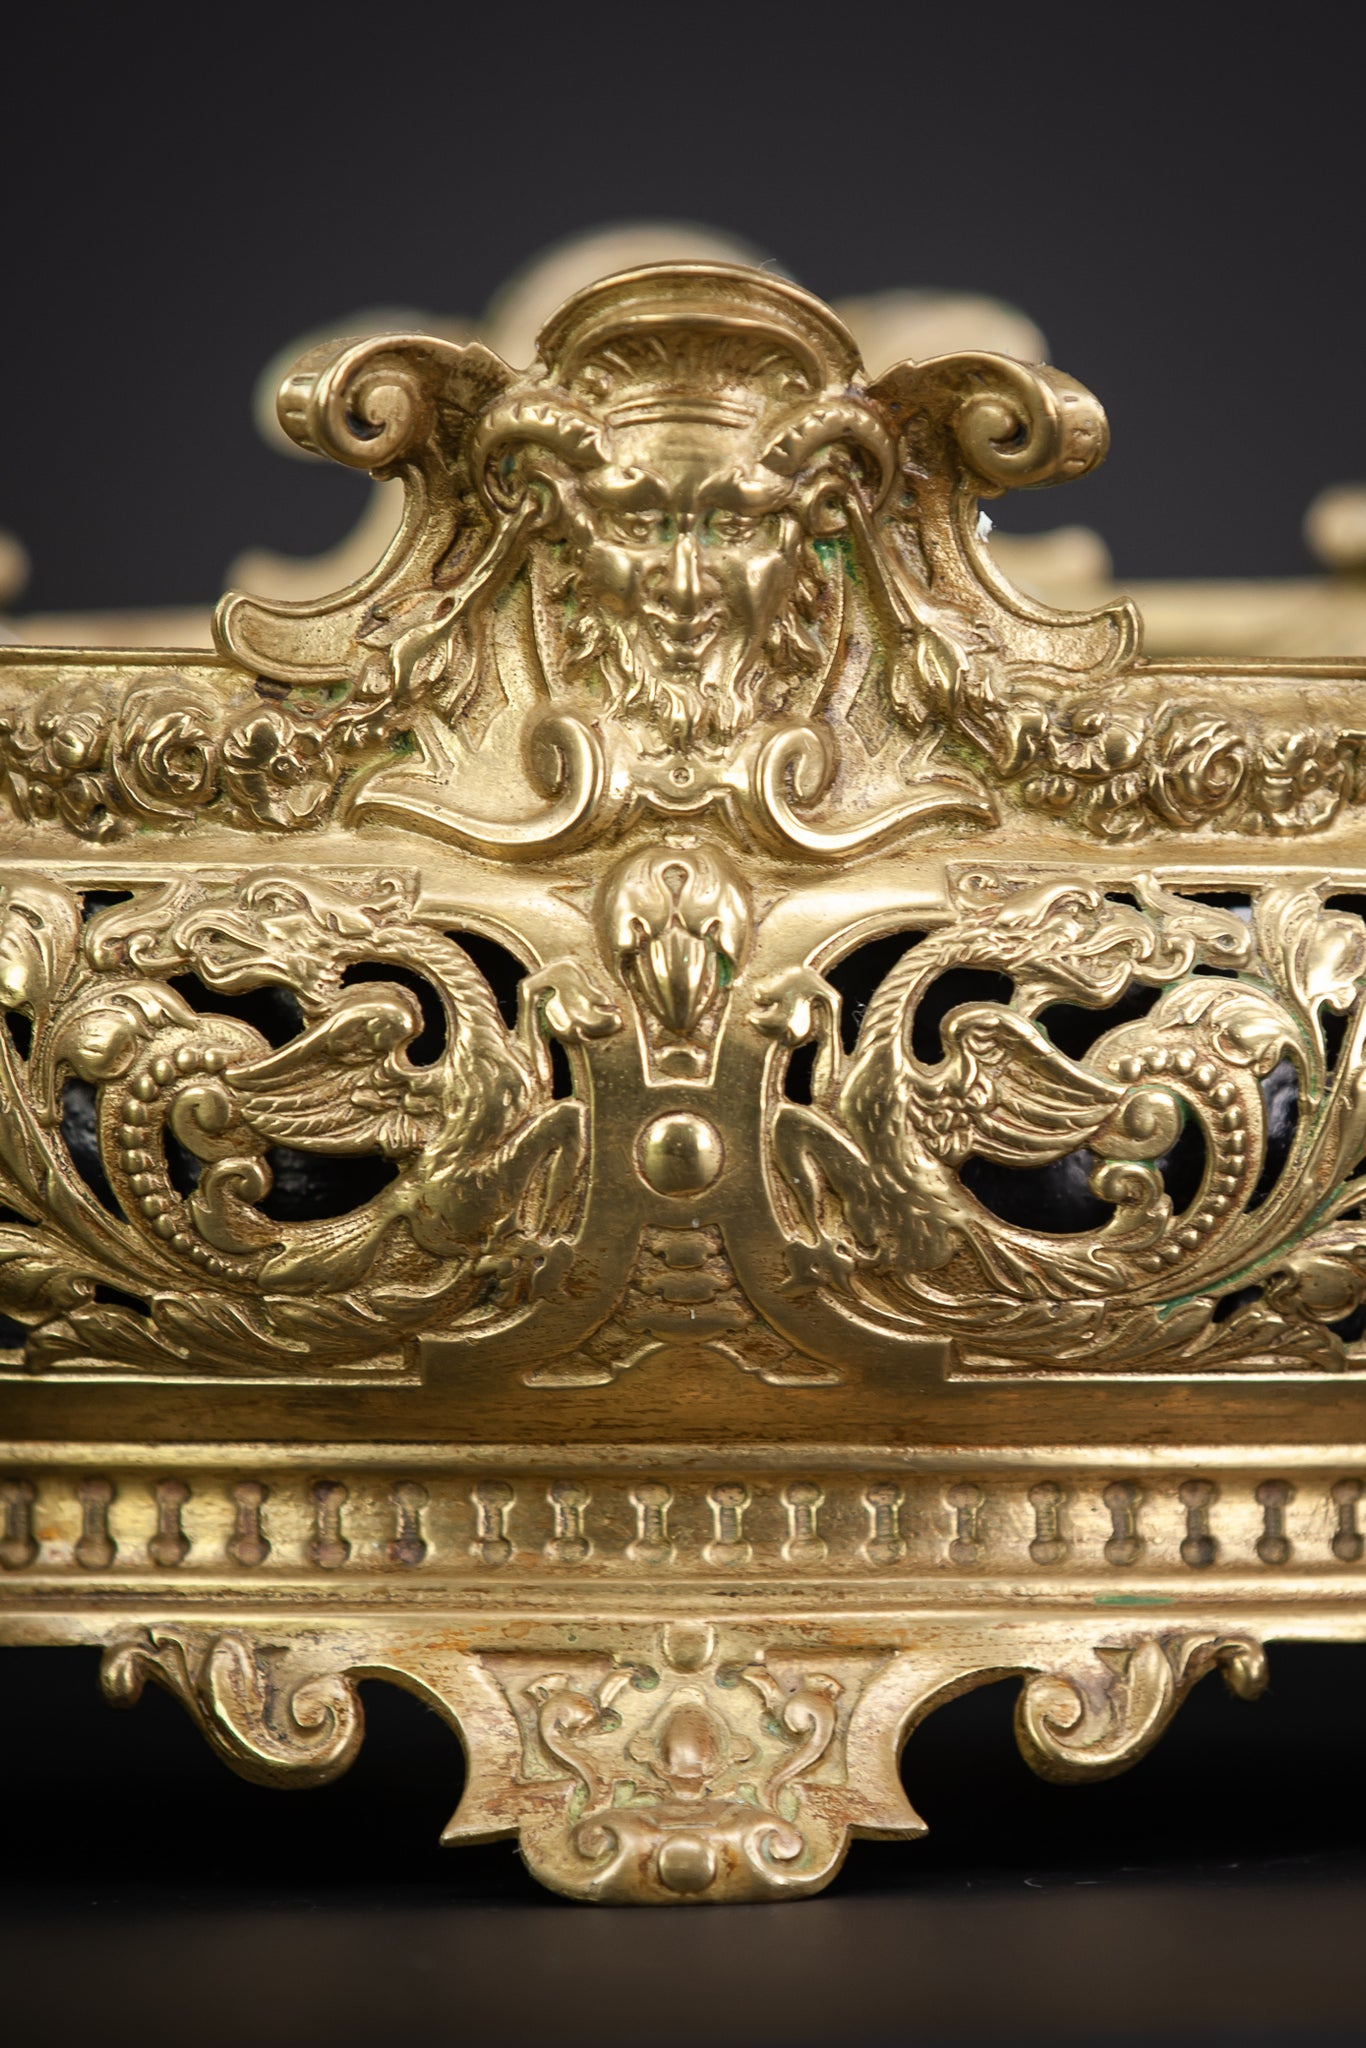 Jardiniere Gilded Bronze Brass Baroque Planter 15.4""